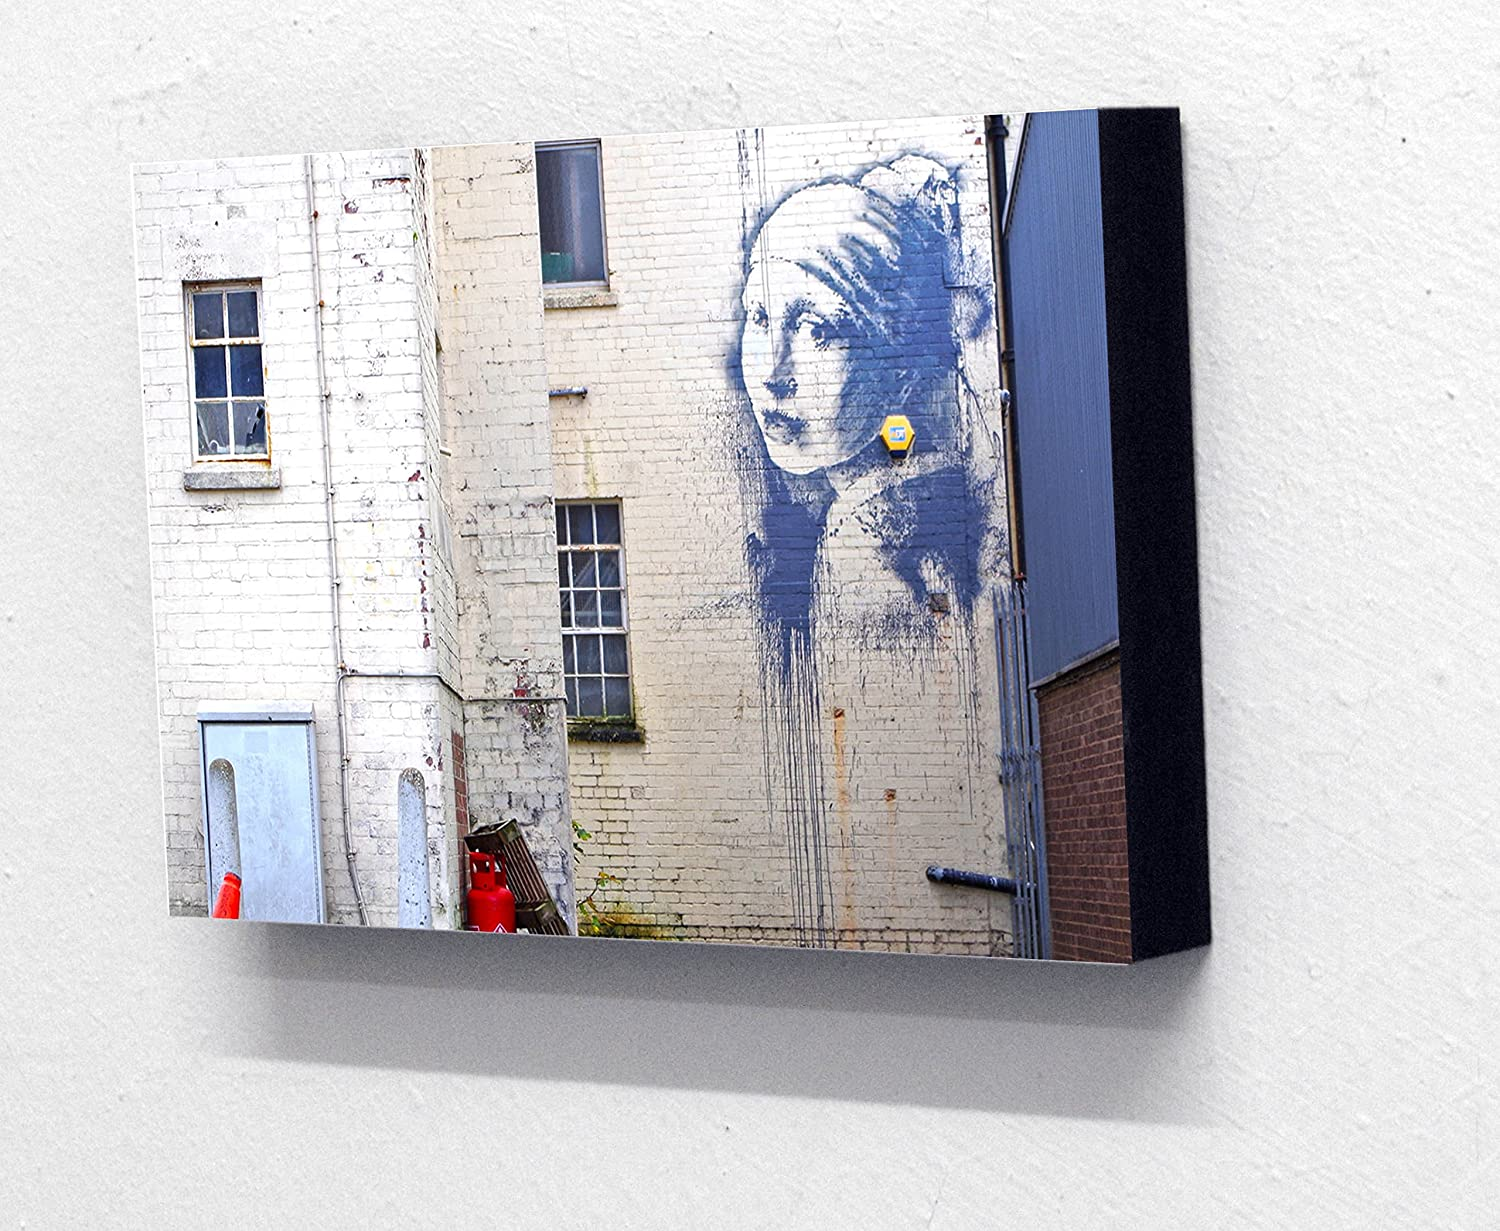 Banksy 'Girl with a Pierced Eardrum'. 6